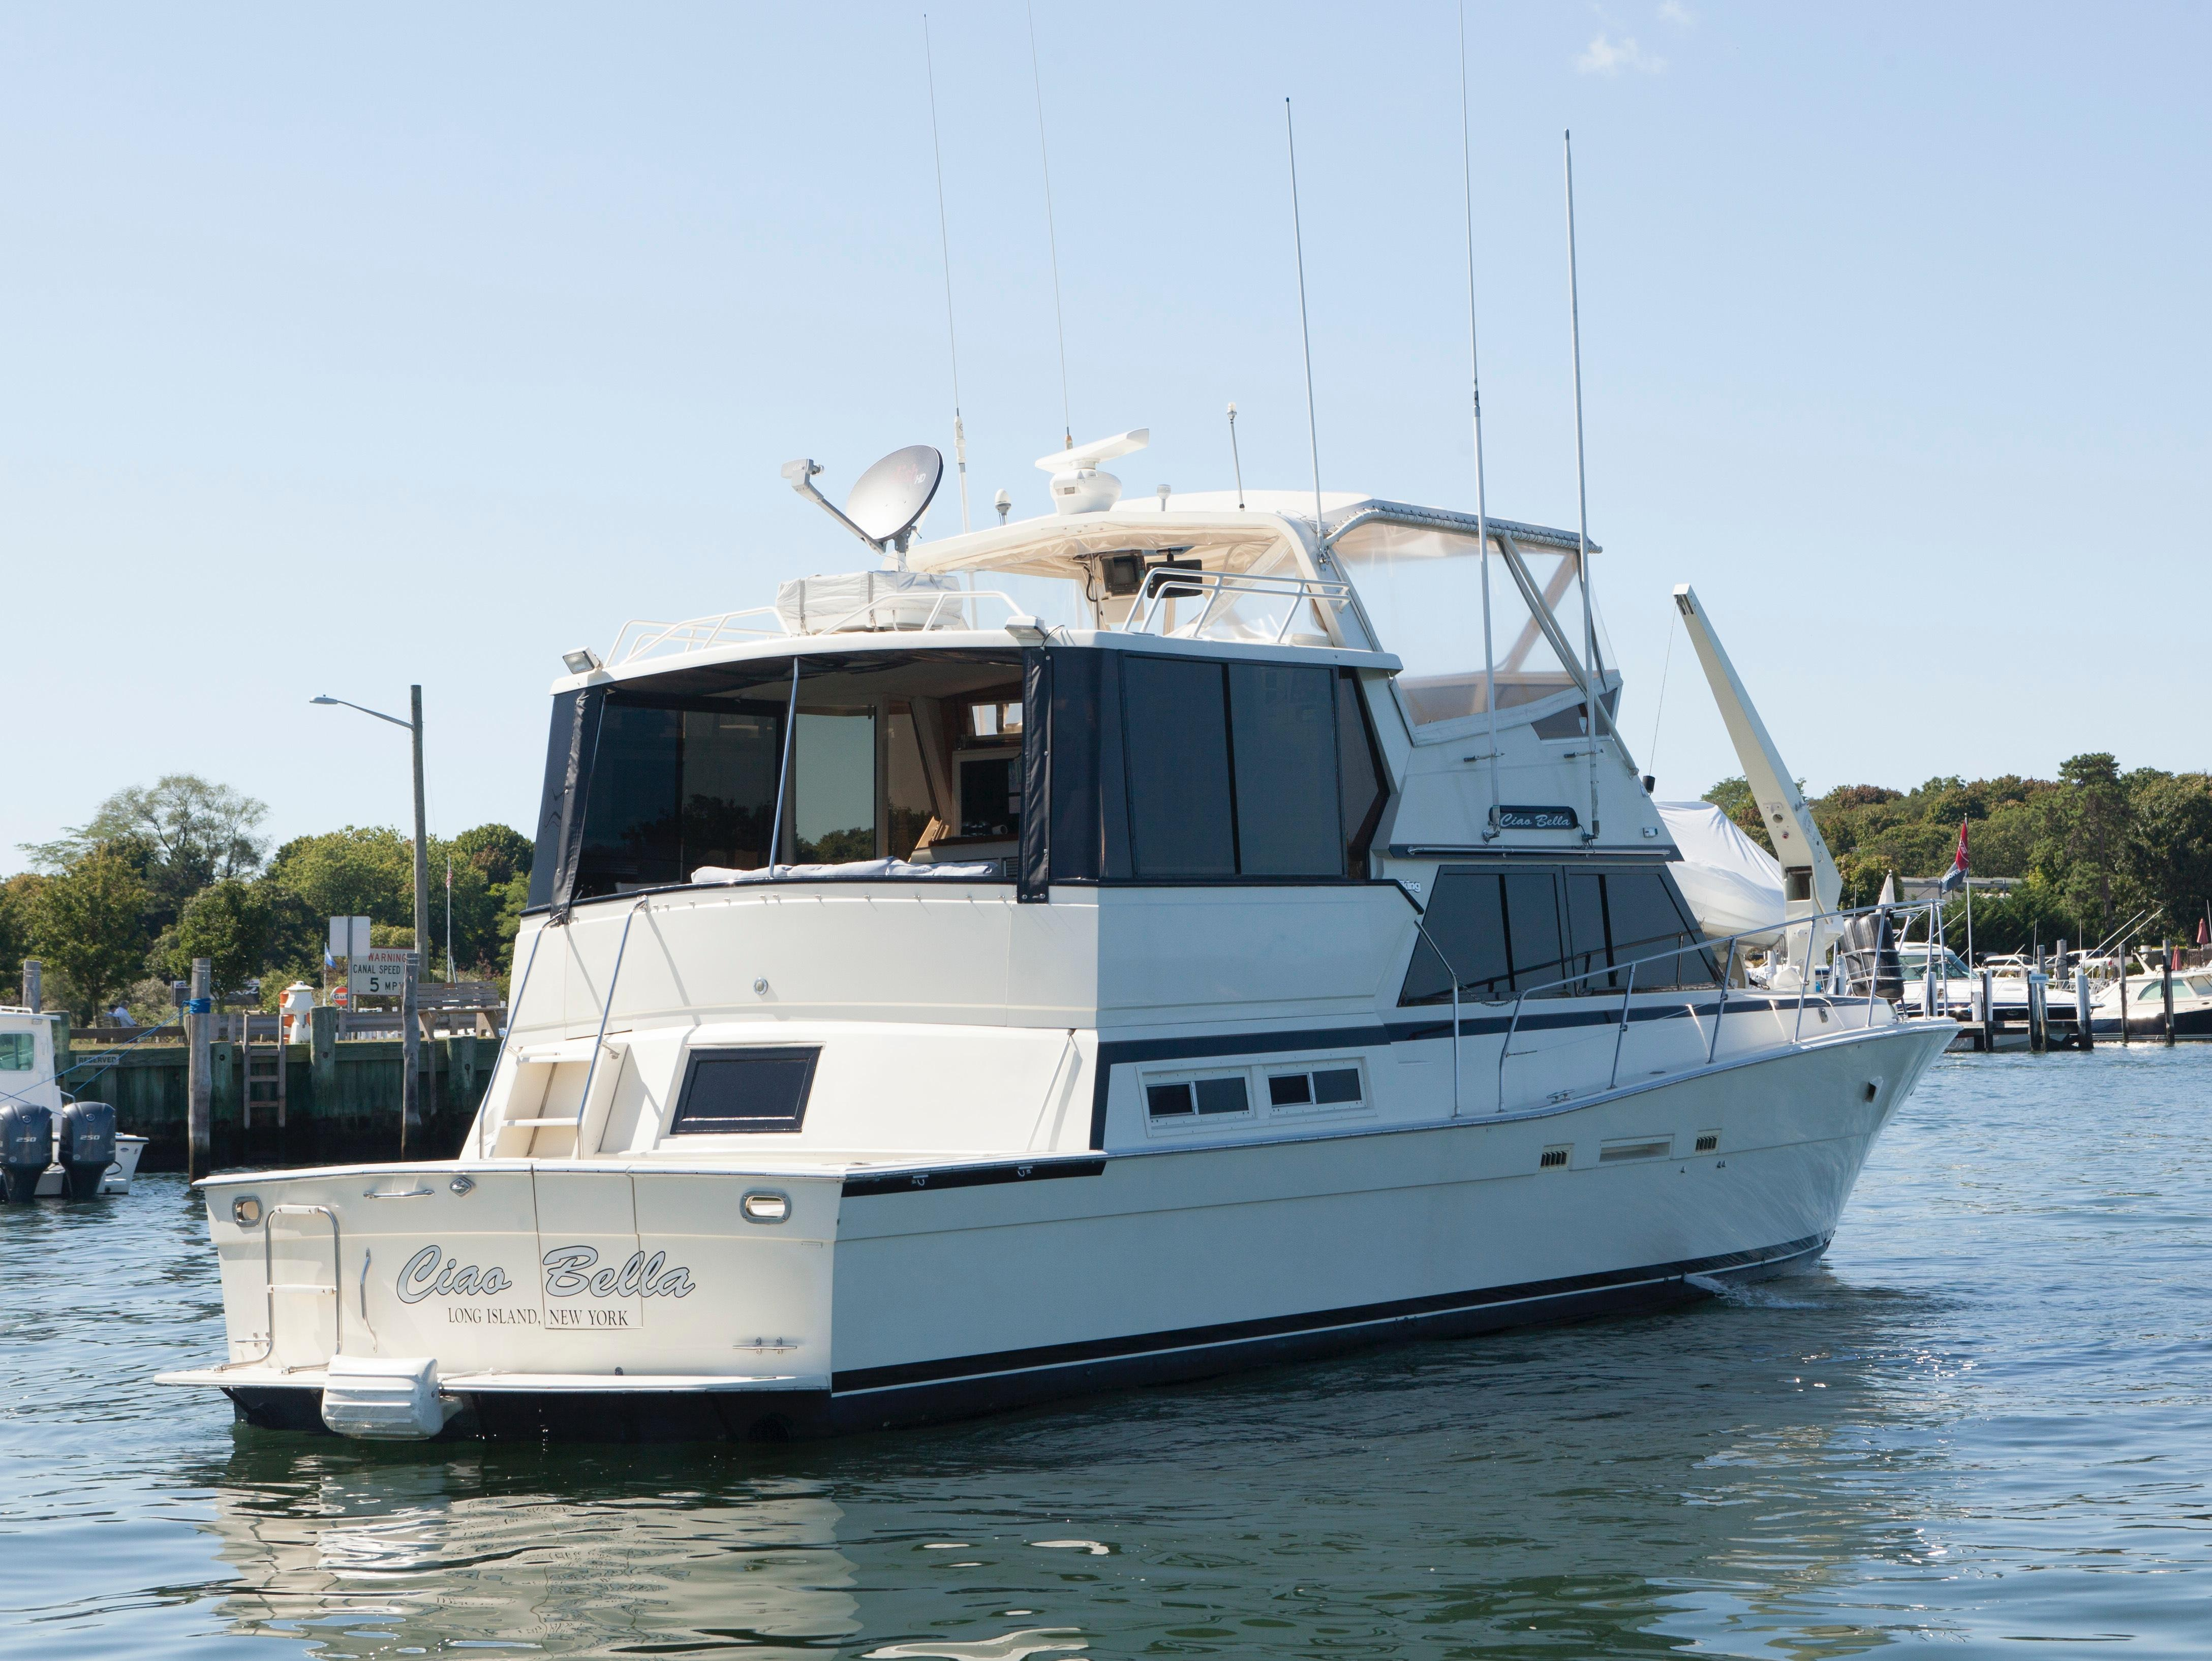 50 viking yachts 1985 ciao bella for sale in long island for 85 viking motor yacht